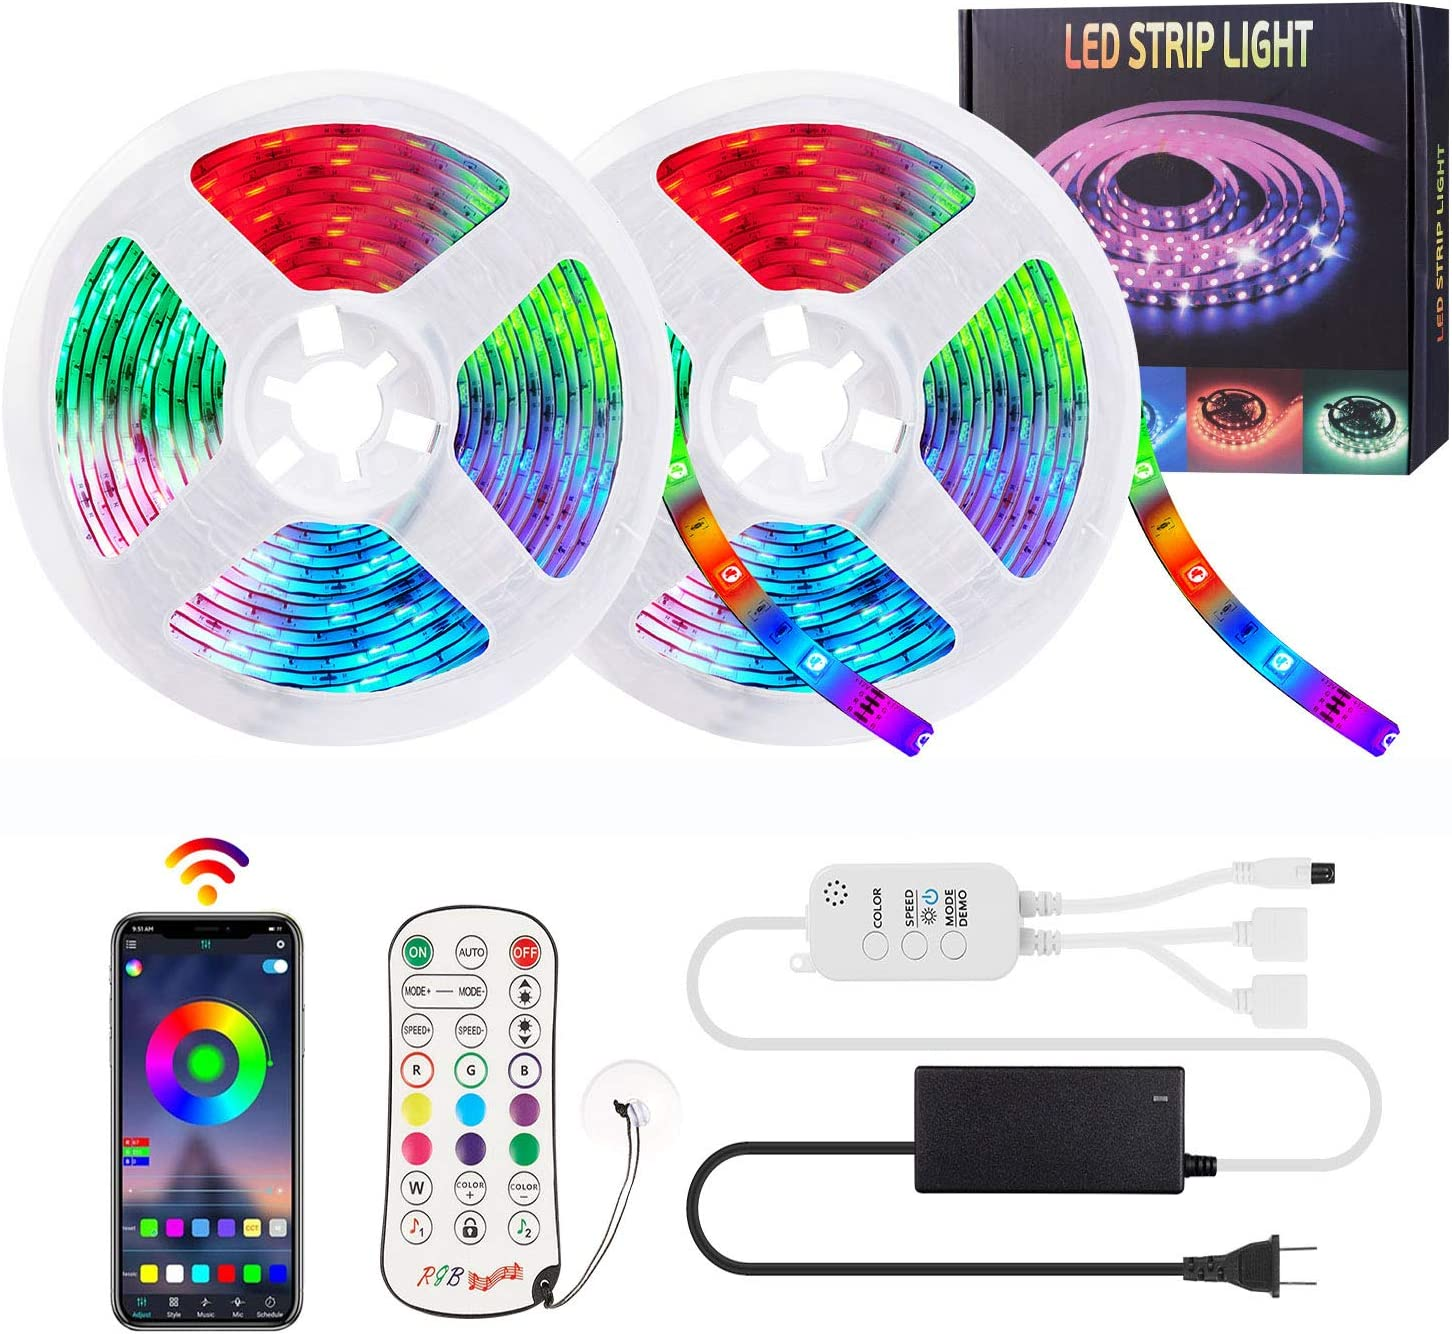 Led Strip Lights for Bedroom 32.8ft,Change Colors by Bluetooth Sync Music or MIC,5050 RGB LED Lights Strip Wall Decorations for Living Room with APP Control,IR Remote Controller,US Power Adapter¡